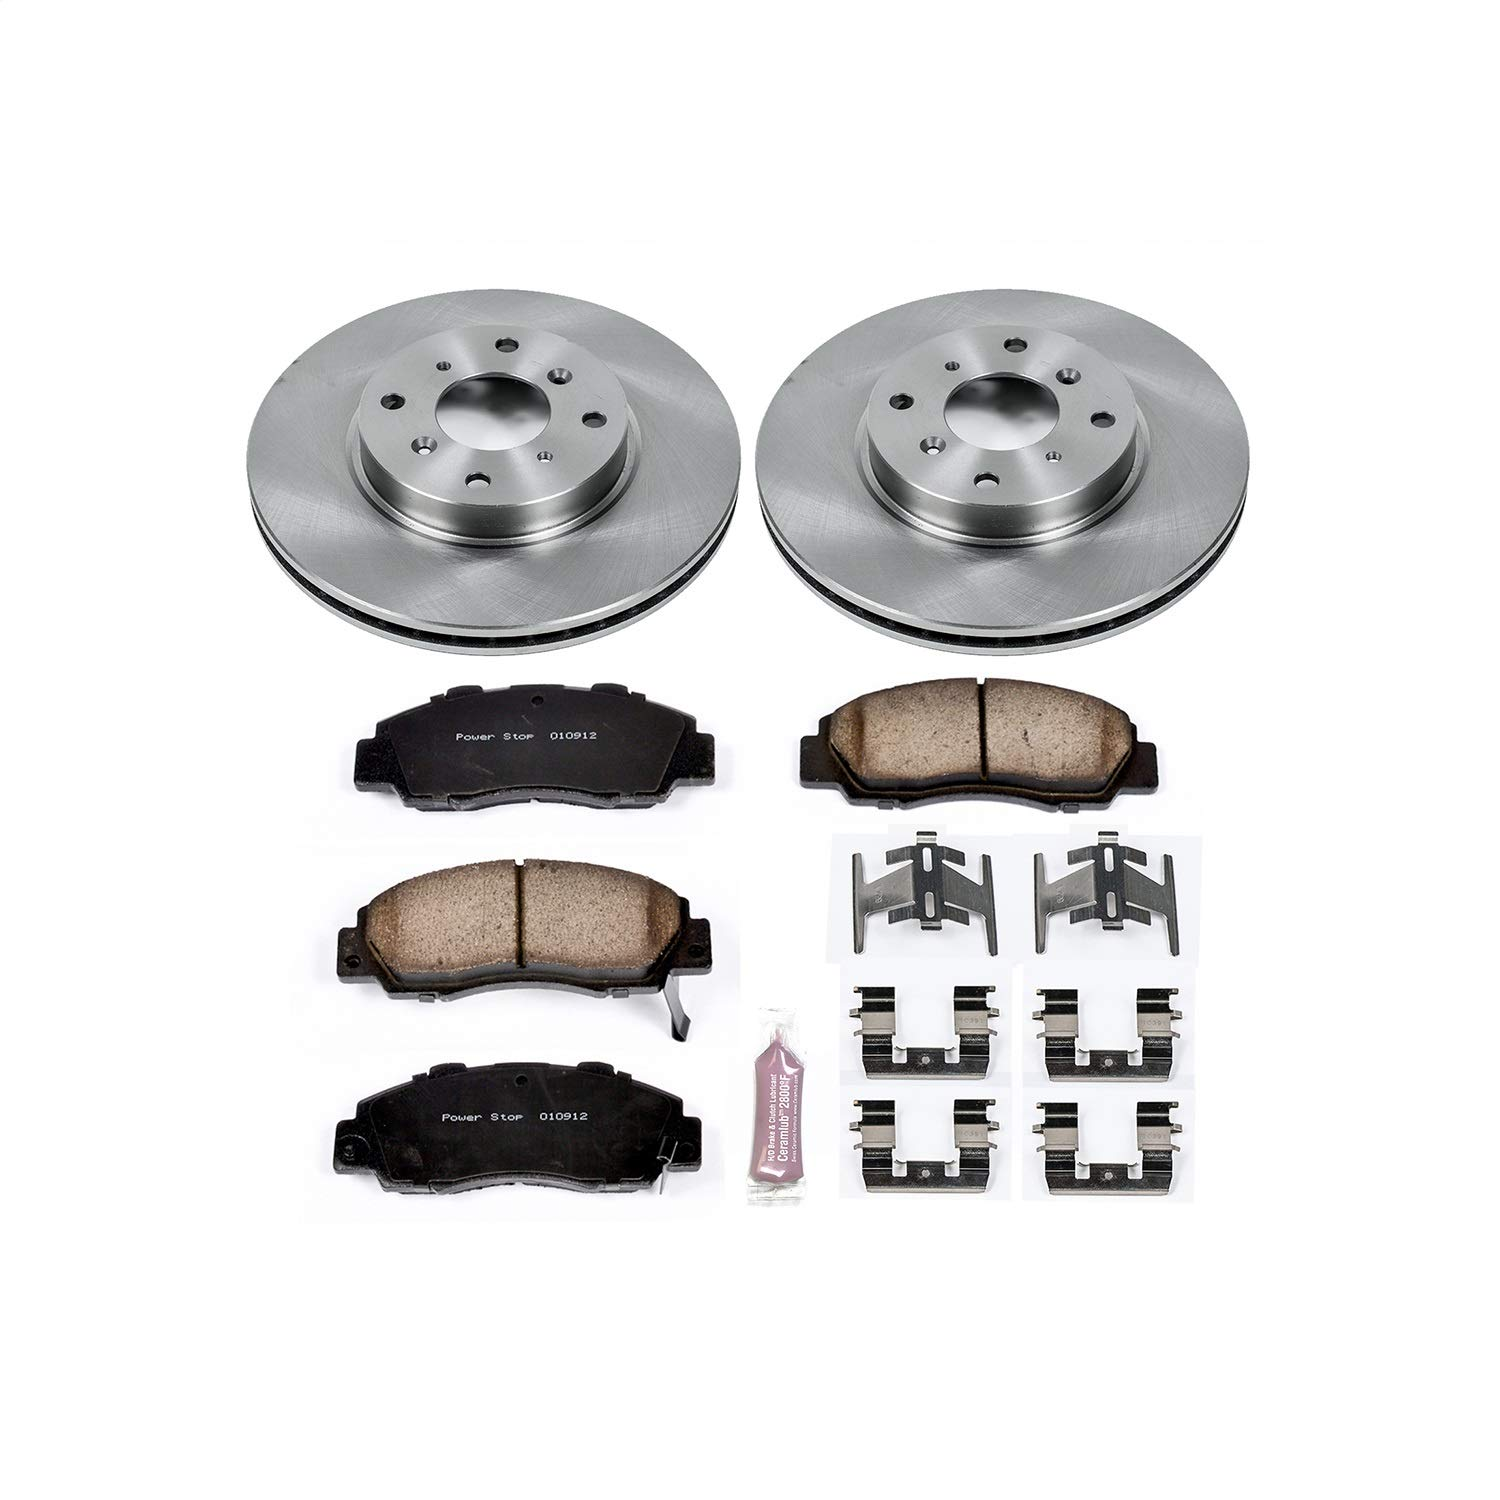 Power Stop KOE1037 Autospecialty By Power Stop 1-Click Daily Driver Brake Kits Front Incl. 11.09 in. OE Replacement Rotors w/Z16 Ceramic Scorched Brake Pads Autospecialty By Power Stop 1-Click Daily Driver Brake Kits